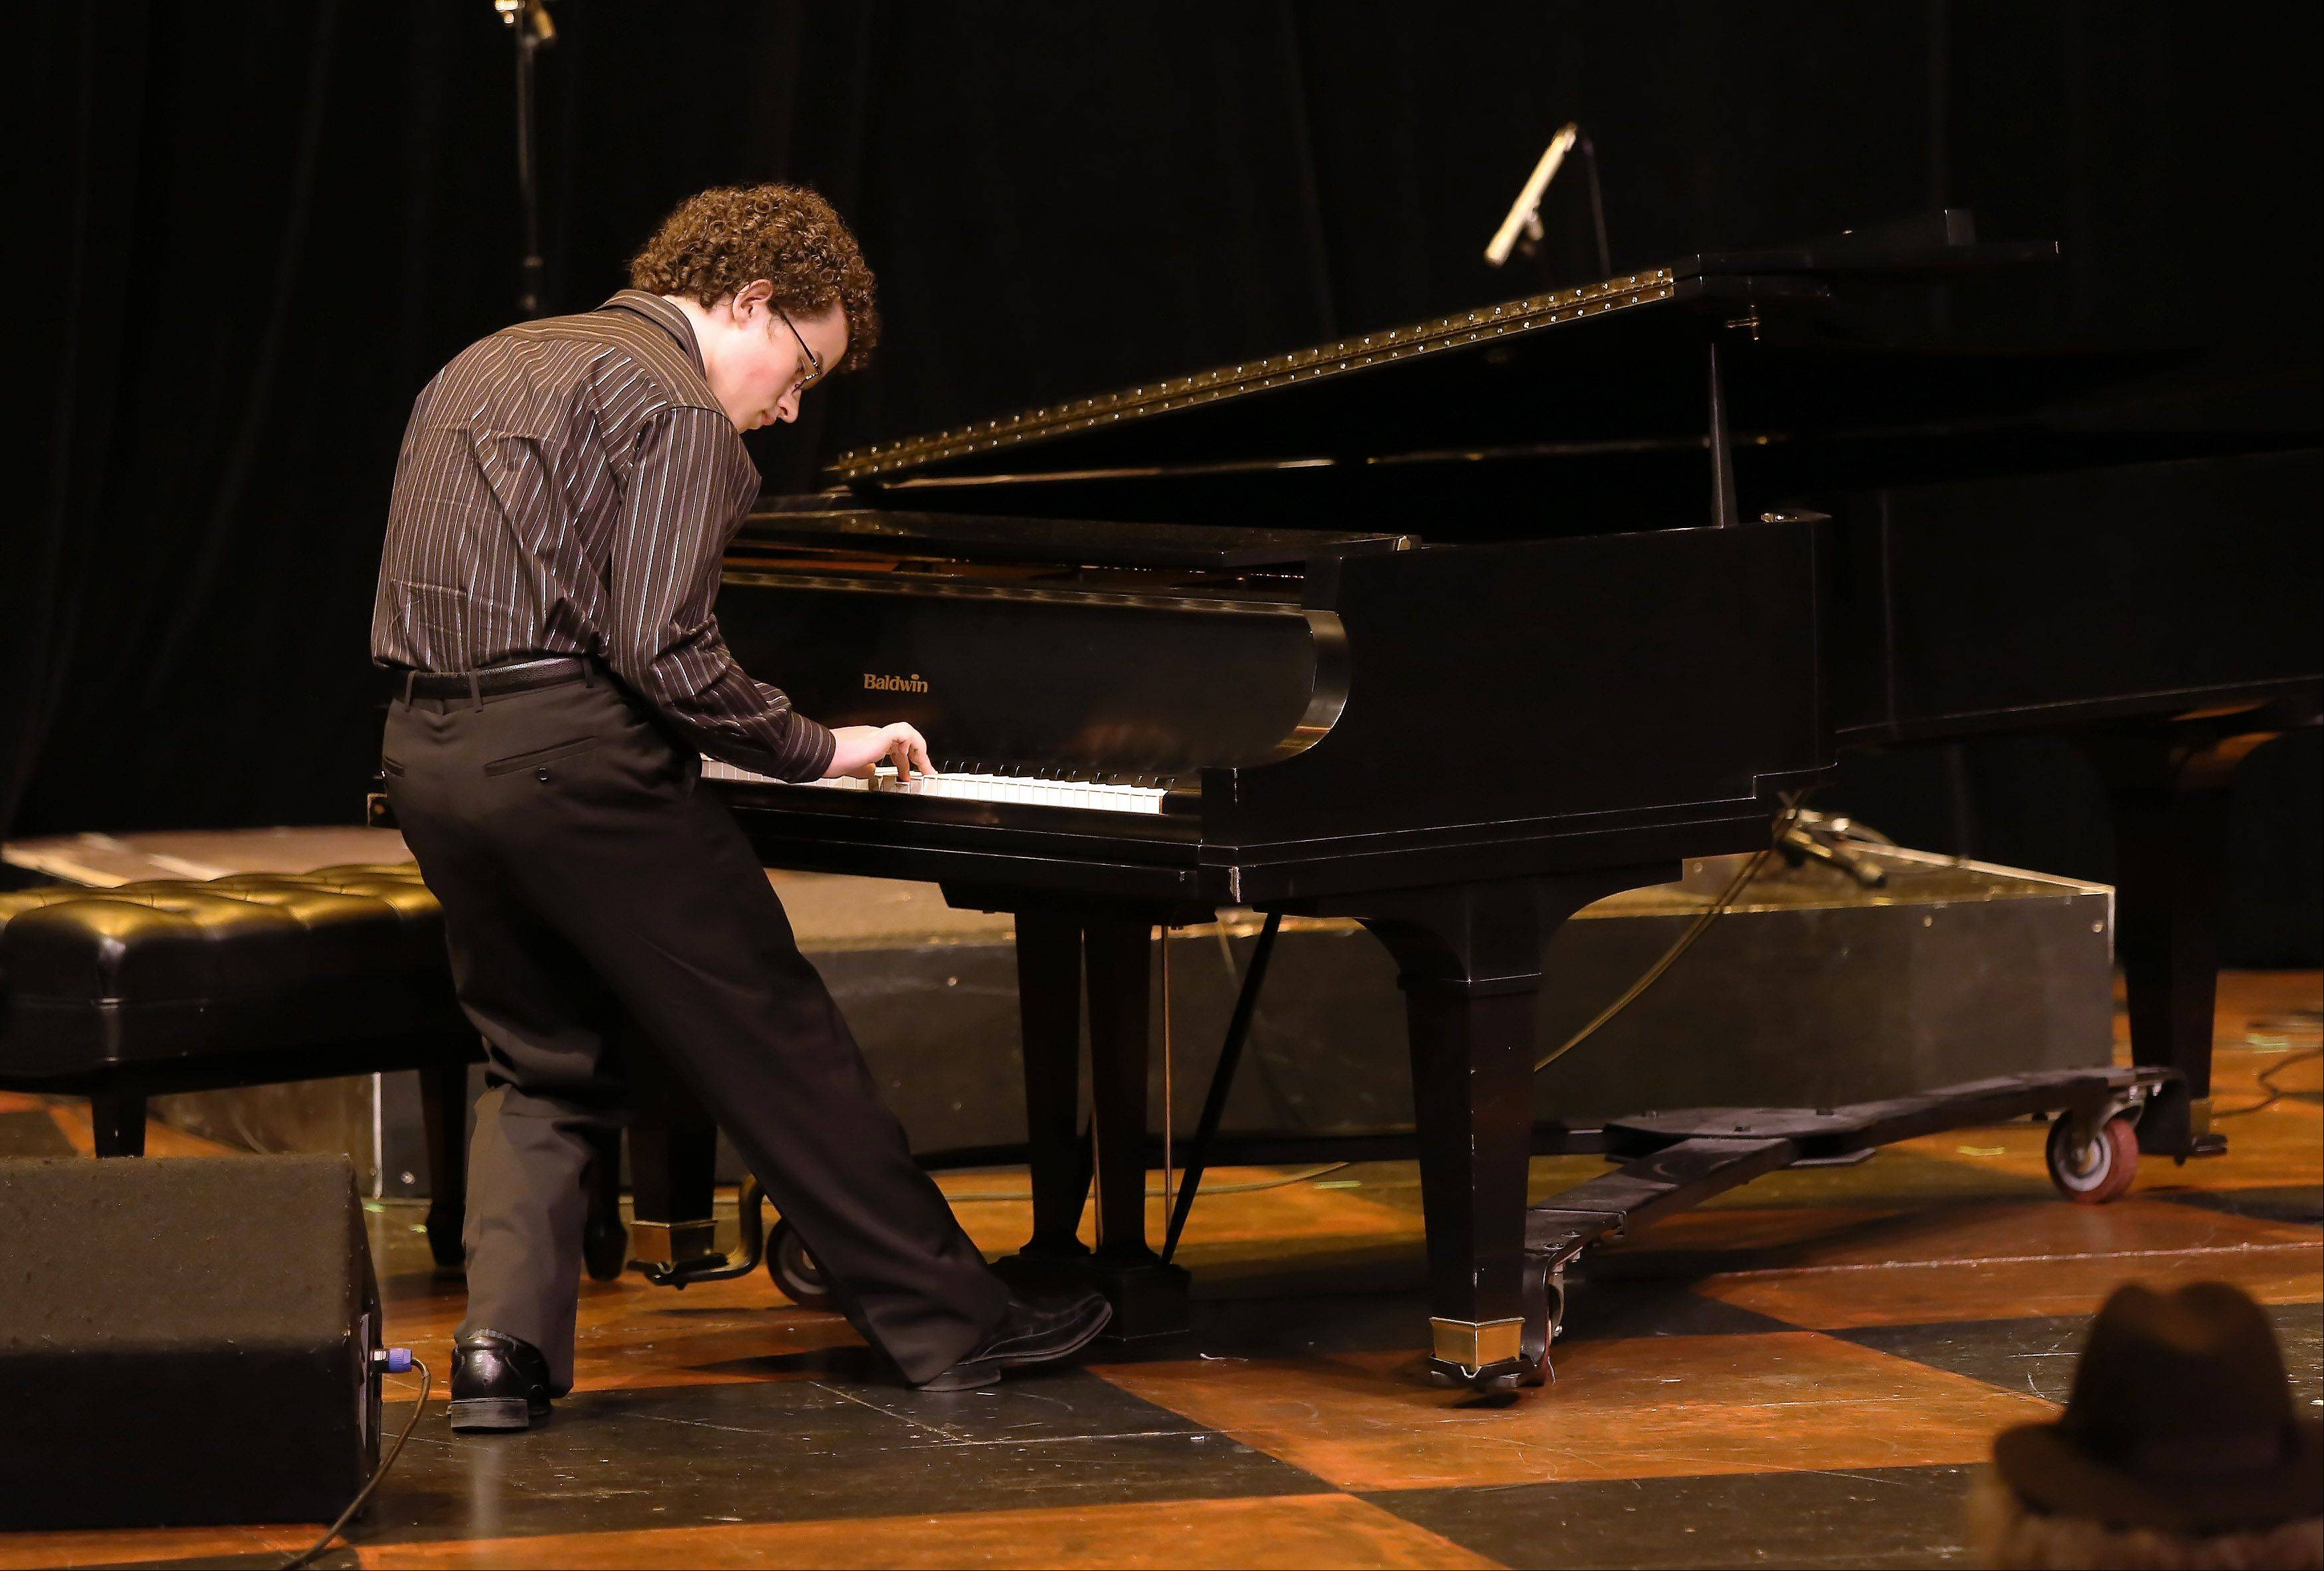 "Joey White of Huntley plays the song ""Freebird"" on the piano during the first round of finalists for the Suburban Chicago's Got Talent competition Sunday night at the Metropolis Performing Arts Centre in Arlington Heights. The summer-long talent contest is presented by the Daily Herald and sponsored by the Arlington Heights Chamber of Commerce."